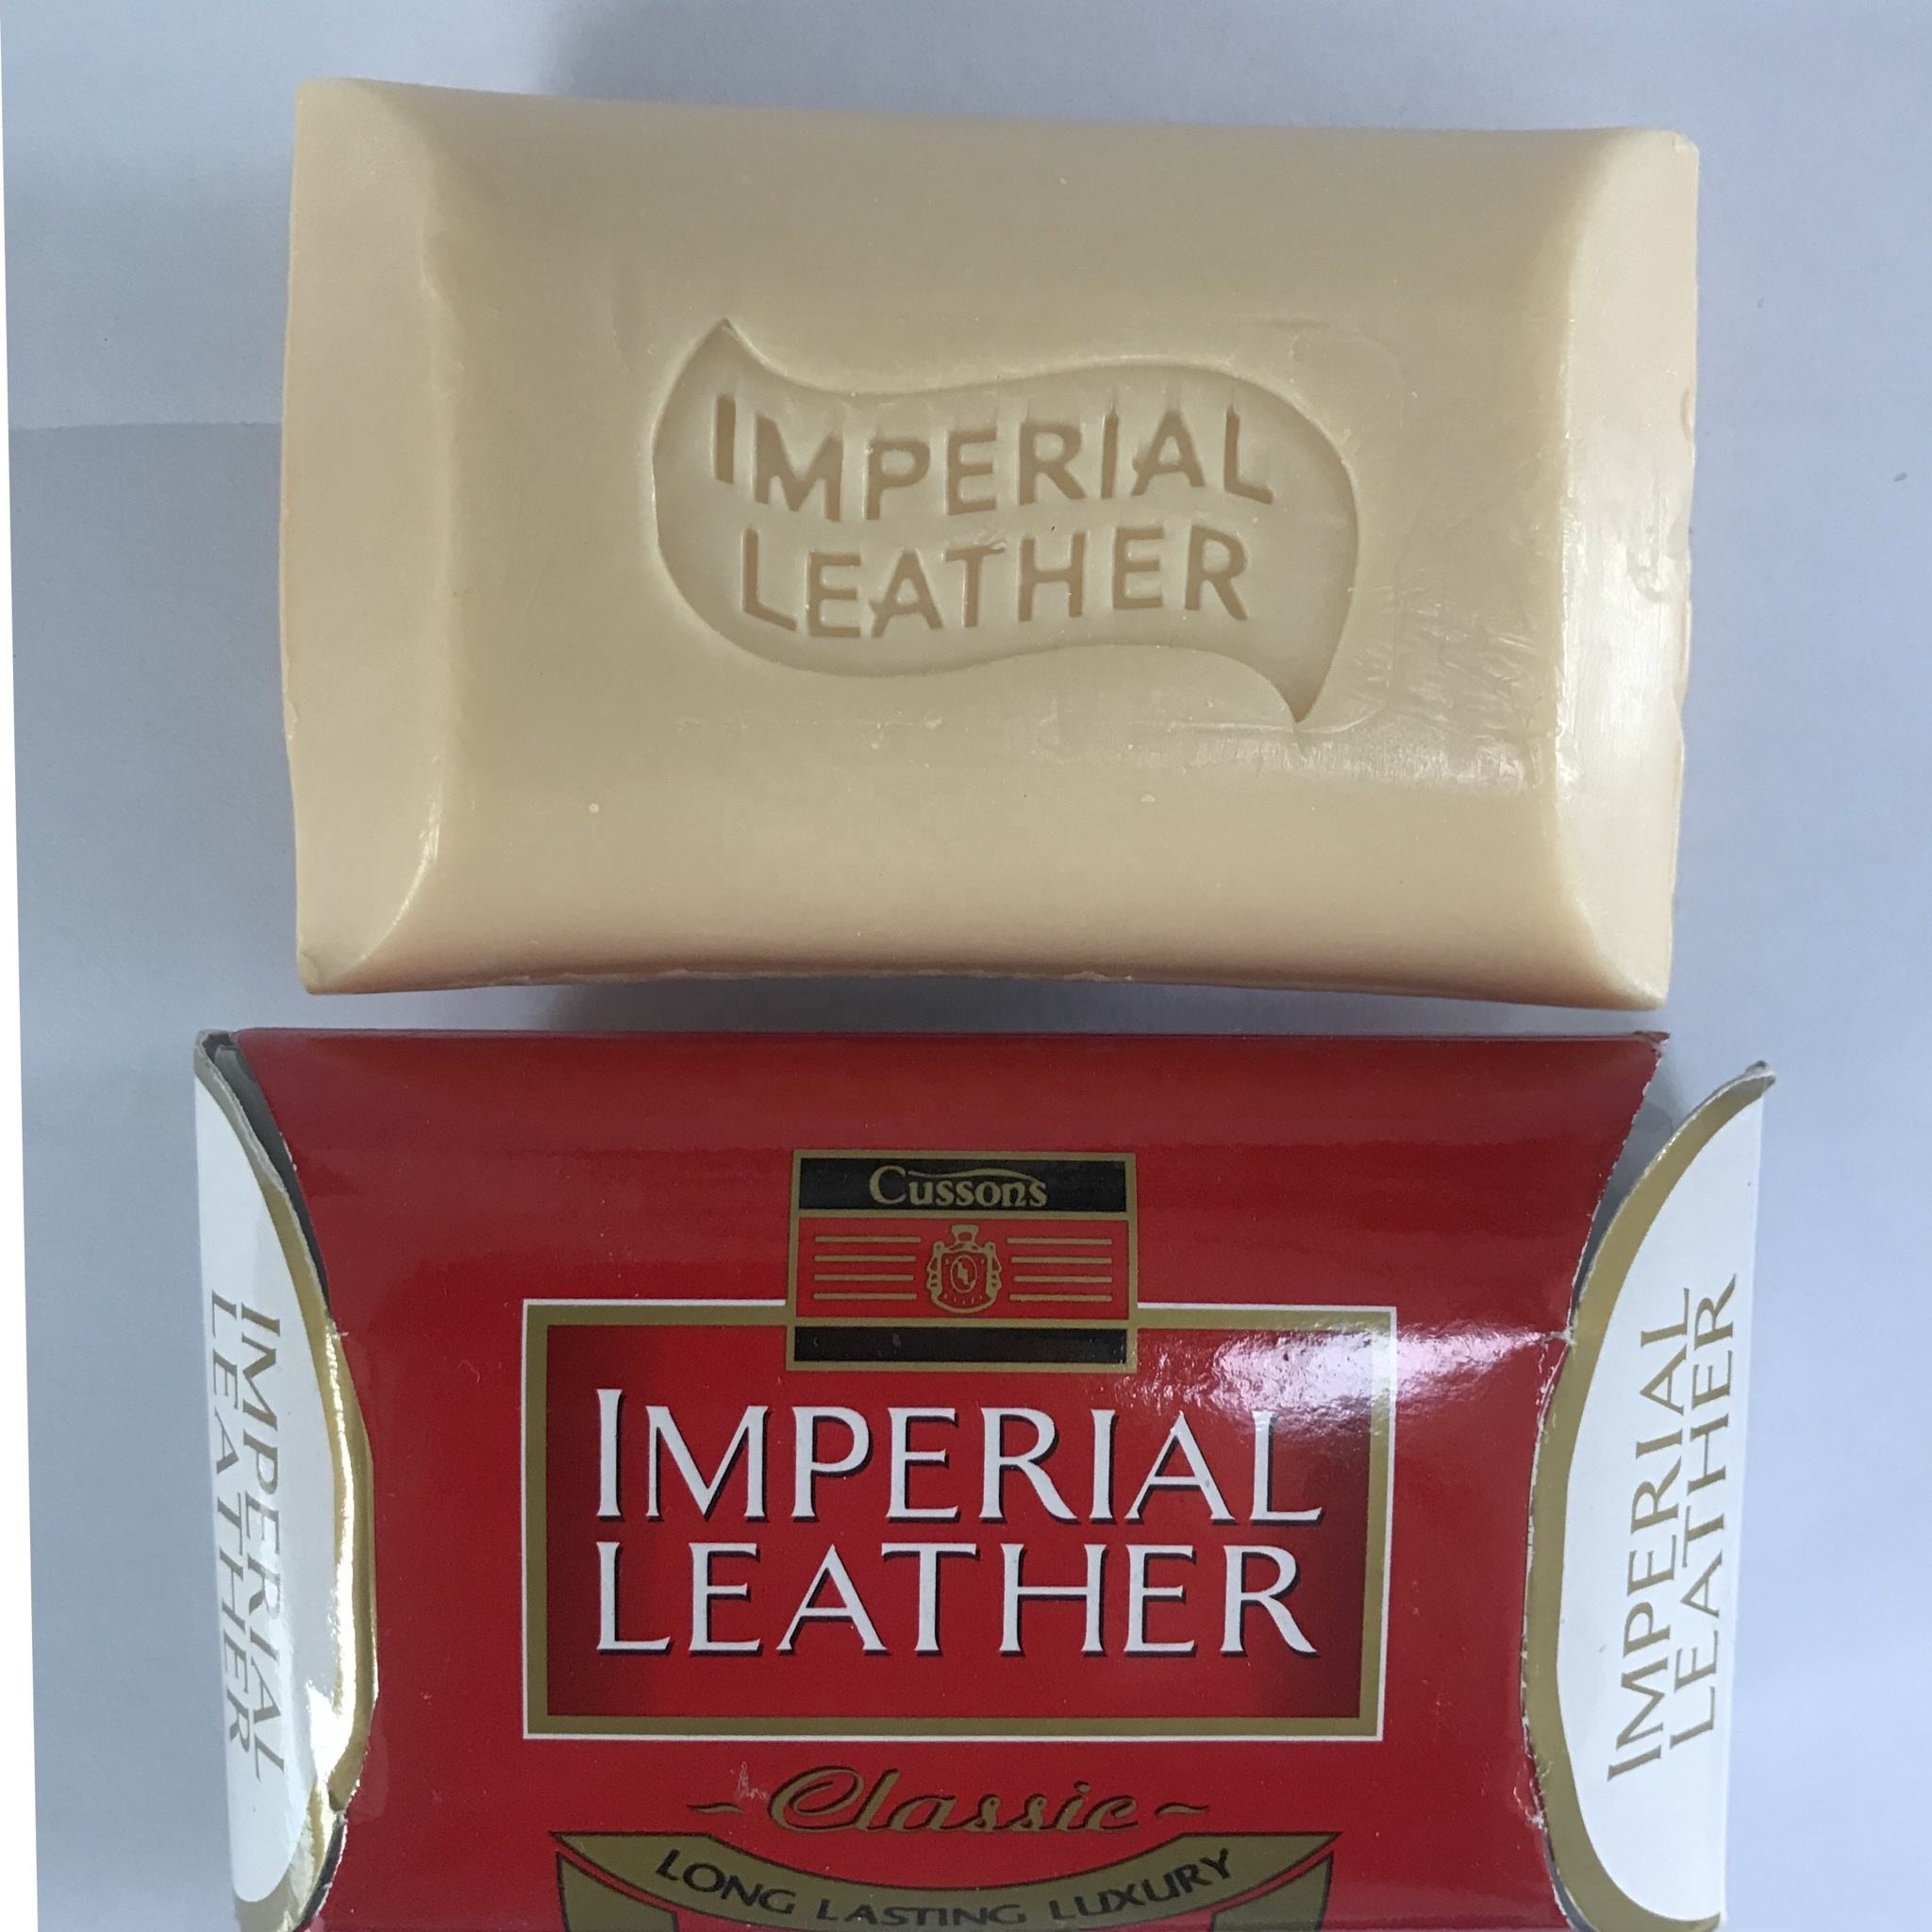 long lasting luxury classic cussons imperial leather beauty whitening bar soap